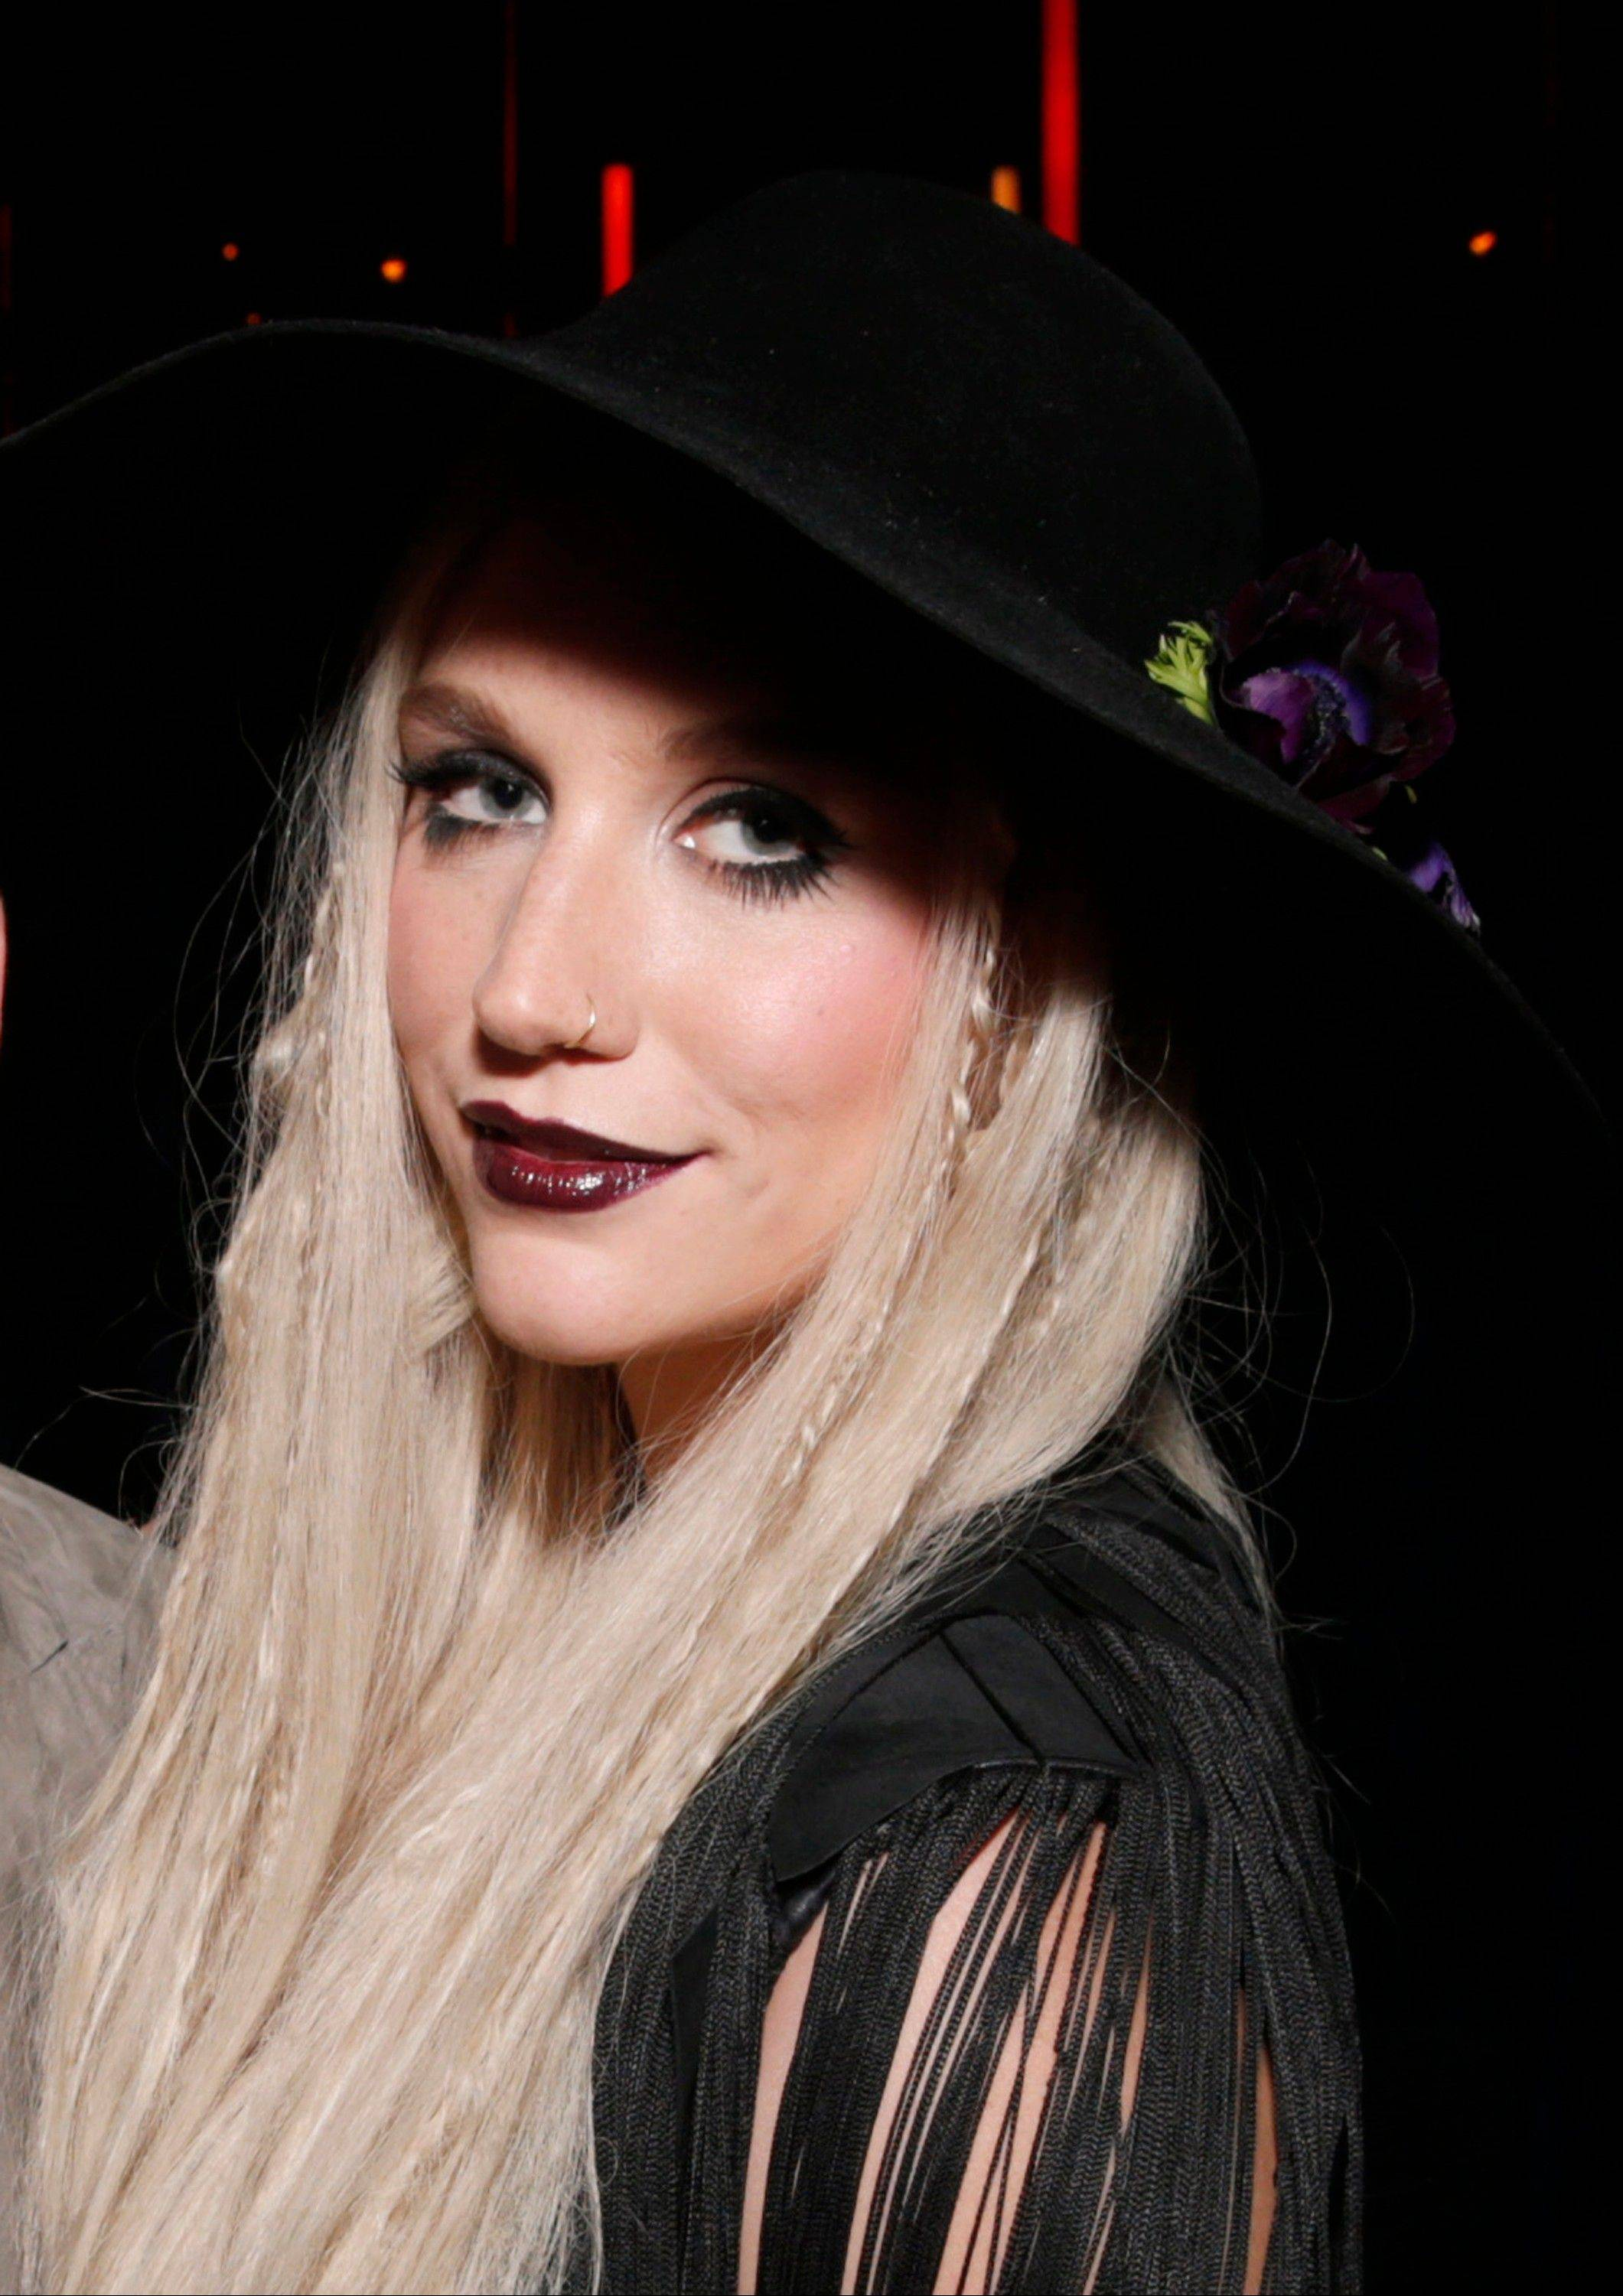 Ke$ha�s has her own reality show, �Ke$ha: My Crazy Beautiful Life,� which debuted Tuesday.